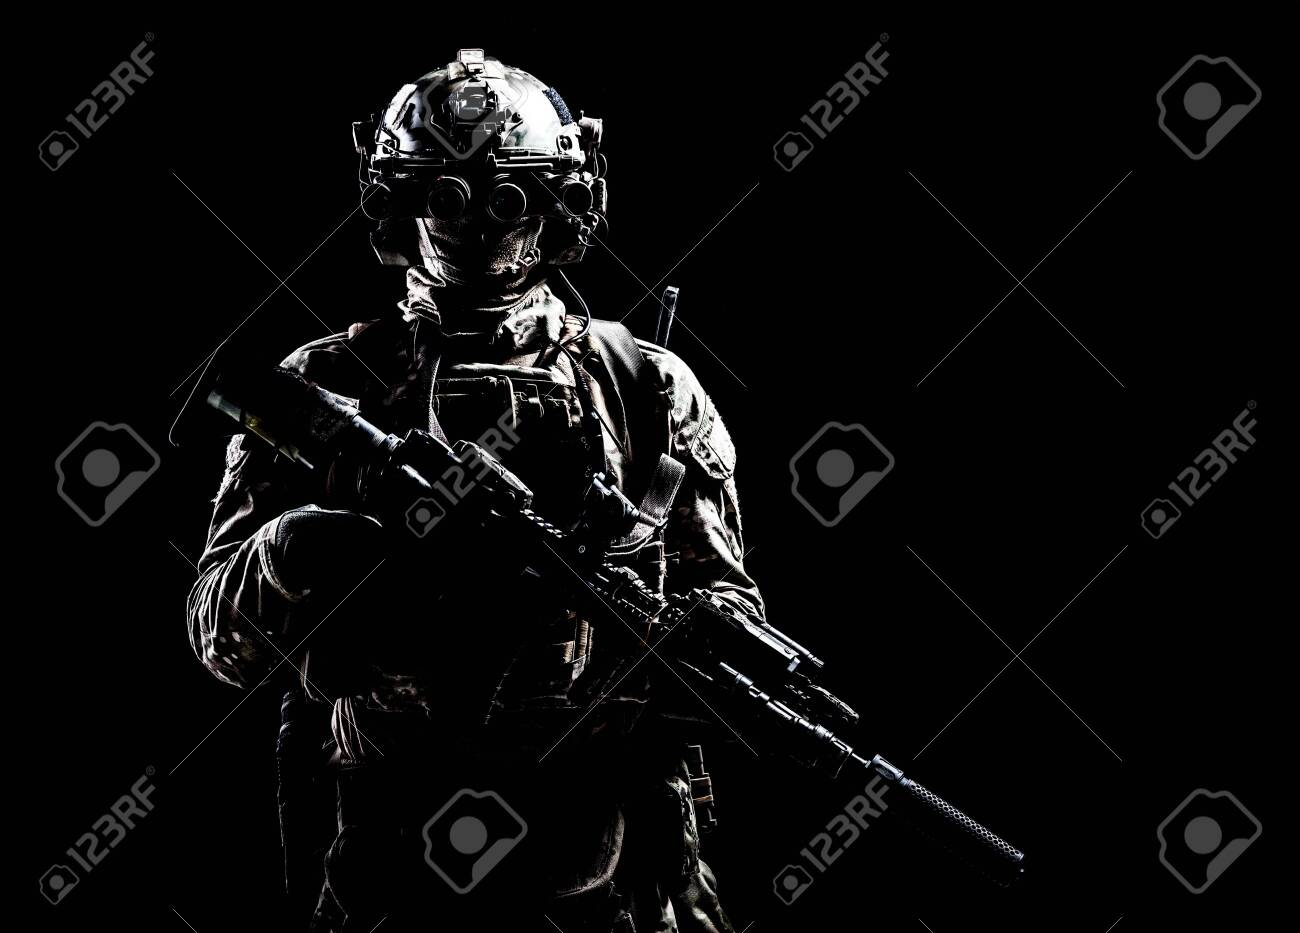 Army special forces shooter low key studio shoot - 129012206